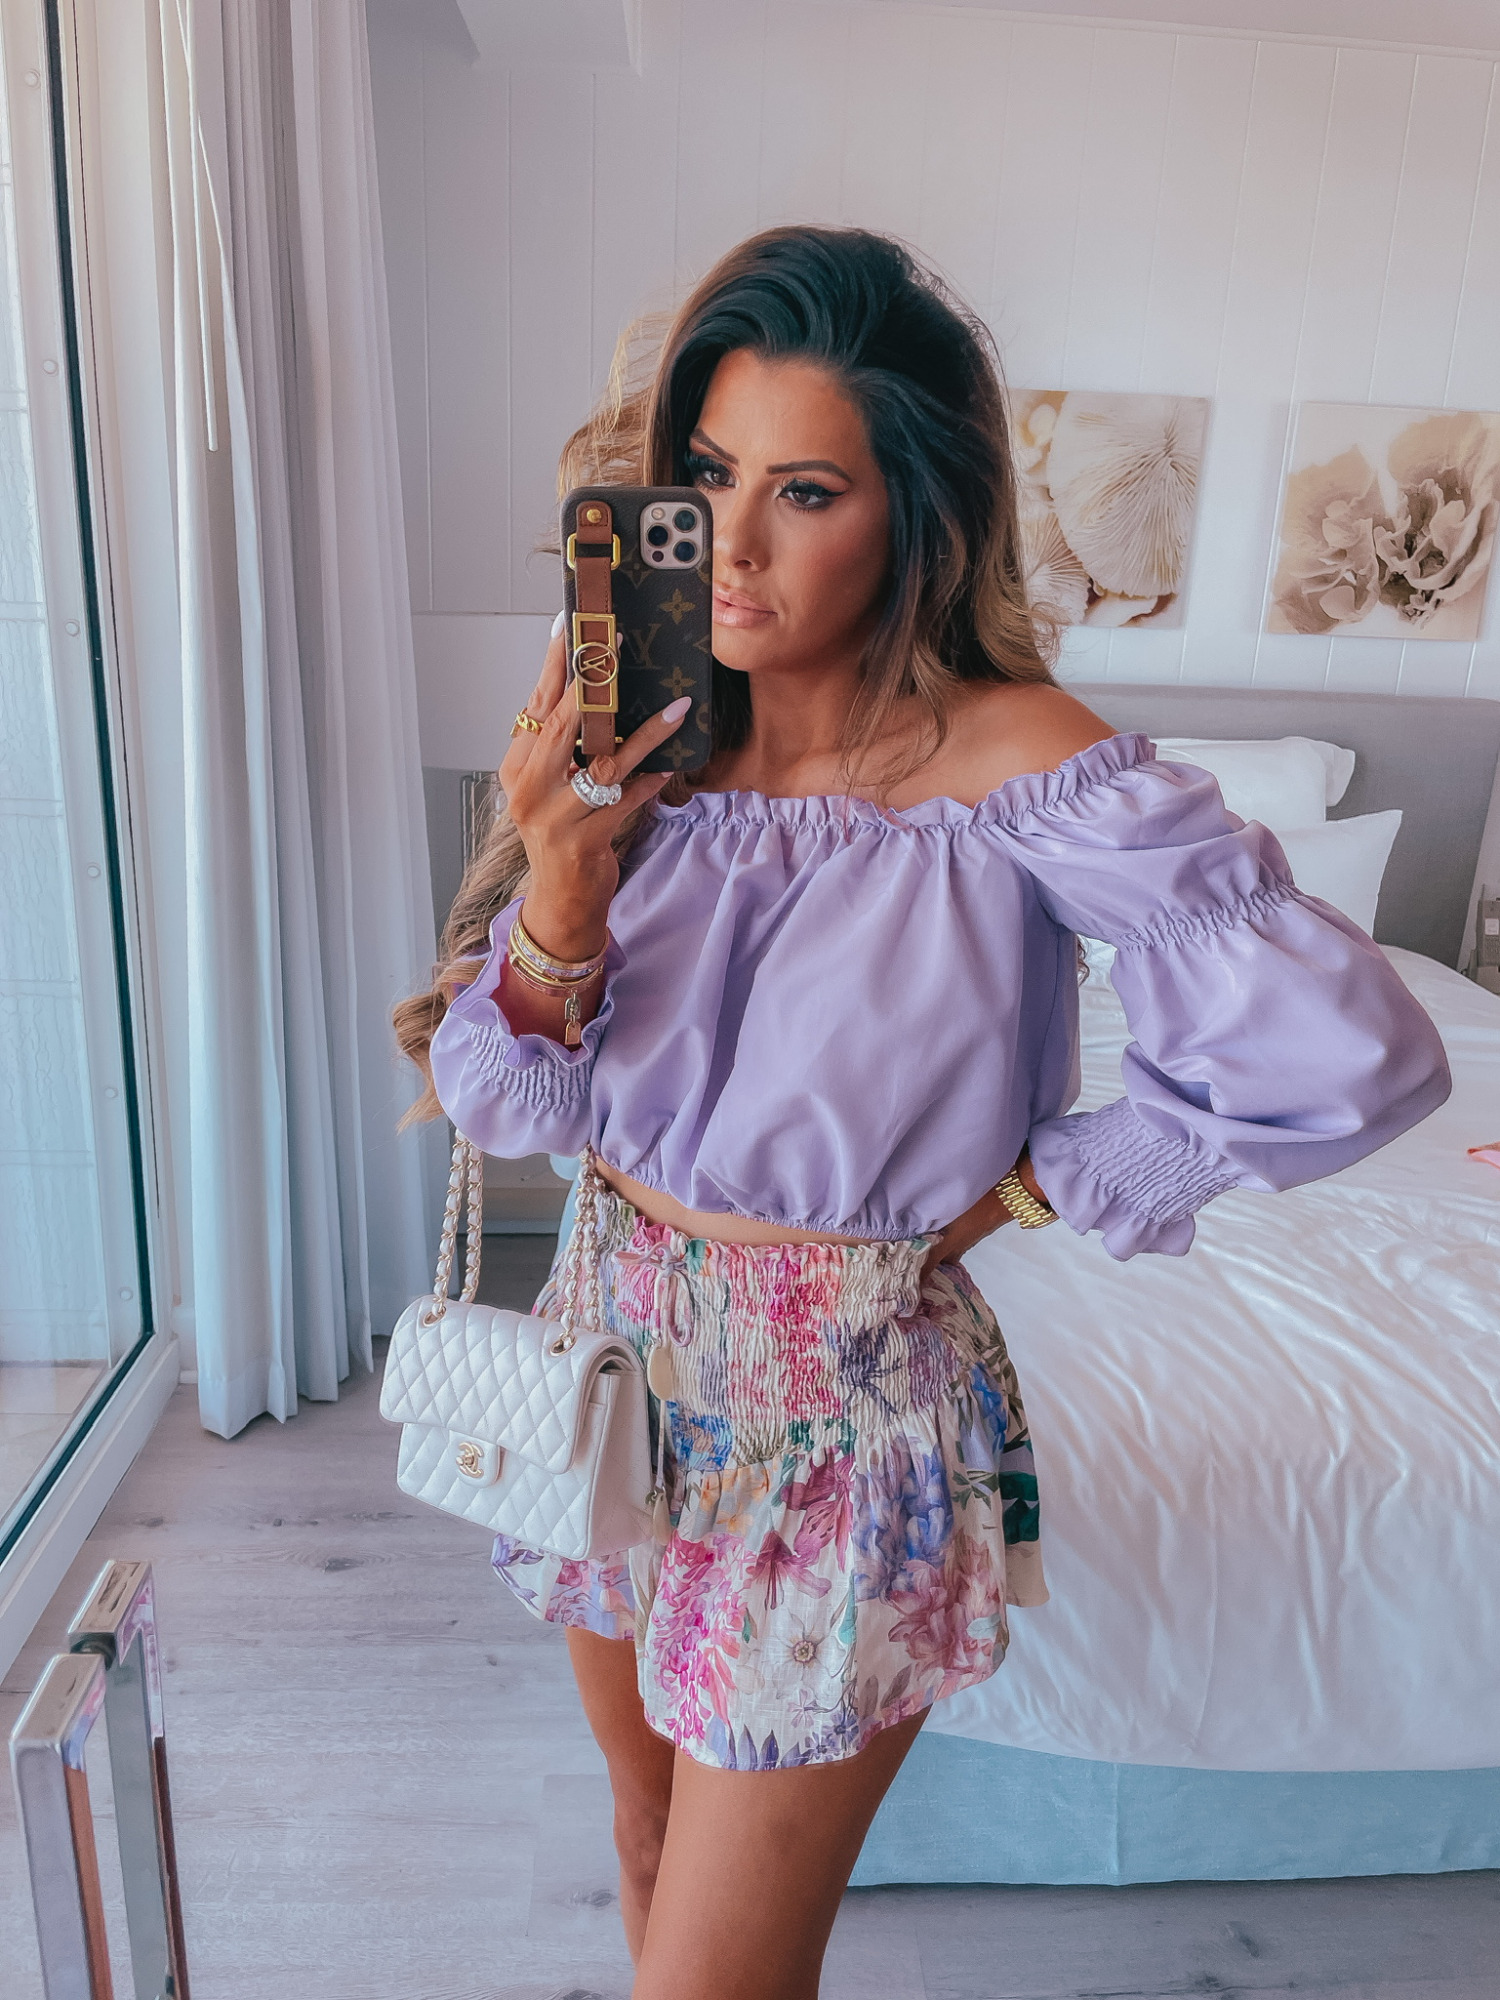 Purple off the shoulder top, nasty gal top, white chanel handbag, floral shorts with elastic waistband, Emily Ann gemma, Louis Vuitton phone case, beach outfit ideas | Instagram Recap by popular US life and style blog, The Sweetest Thing: image of Emily Gemma wearing a purple off the shoulder long sleeve top, white floral print shorts and holding a white quilted handbag.